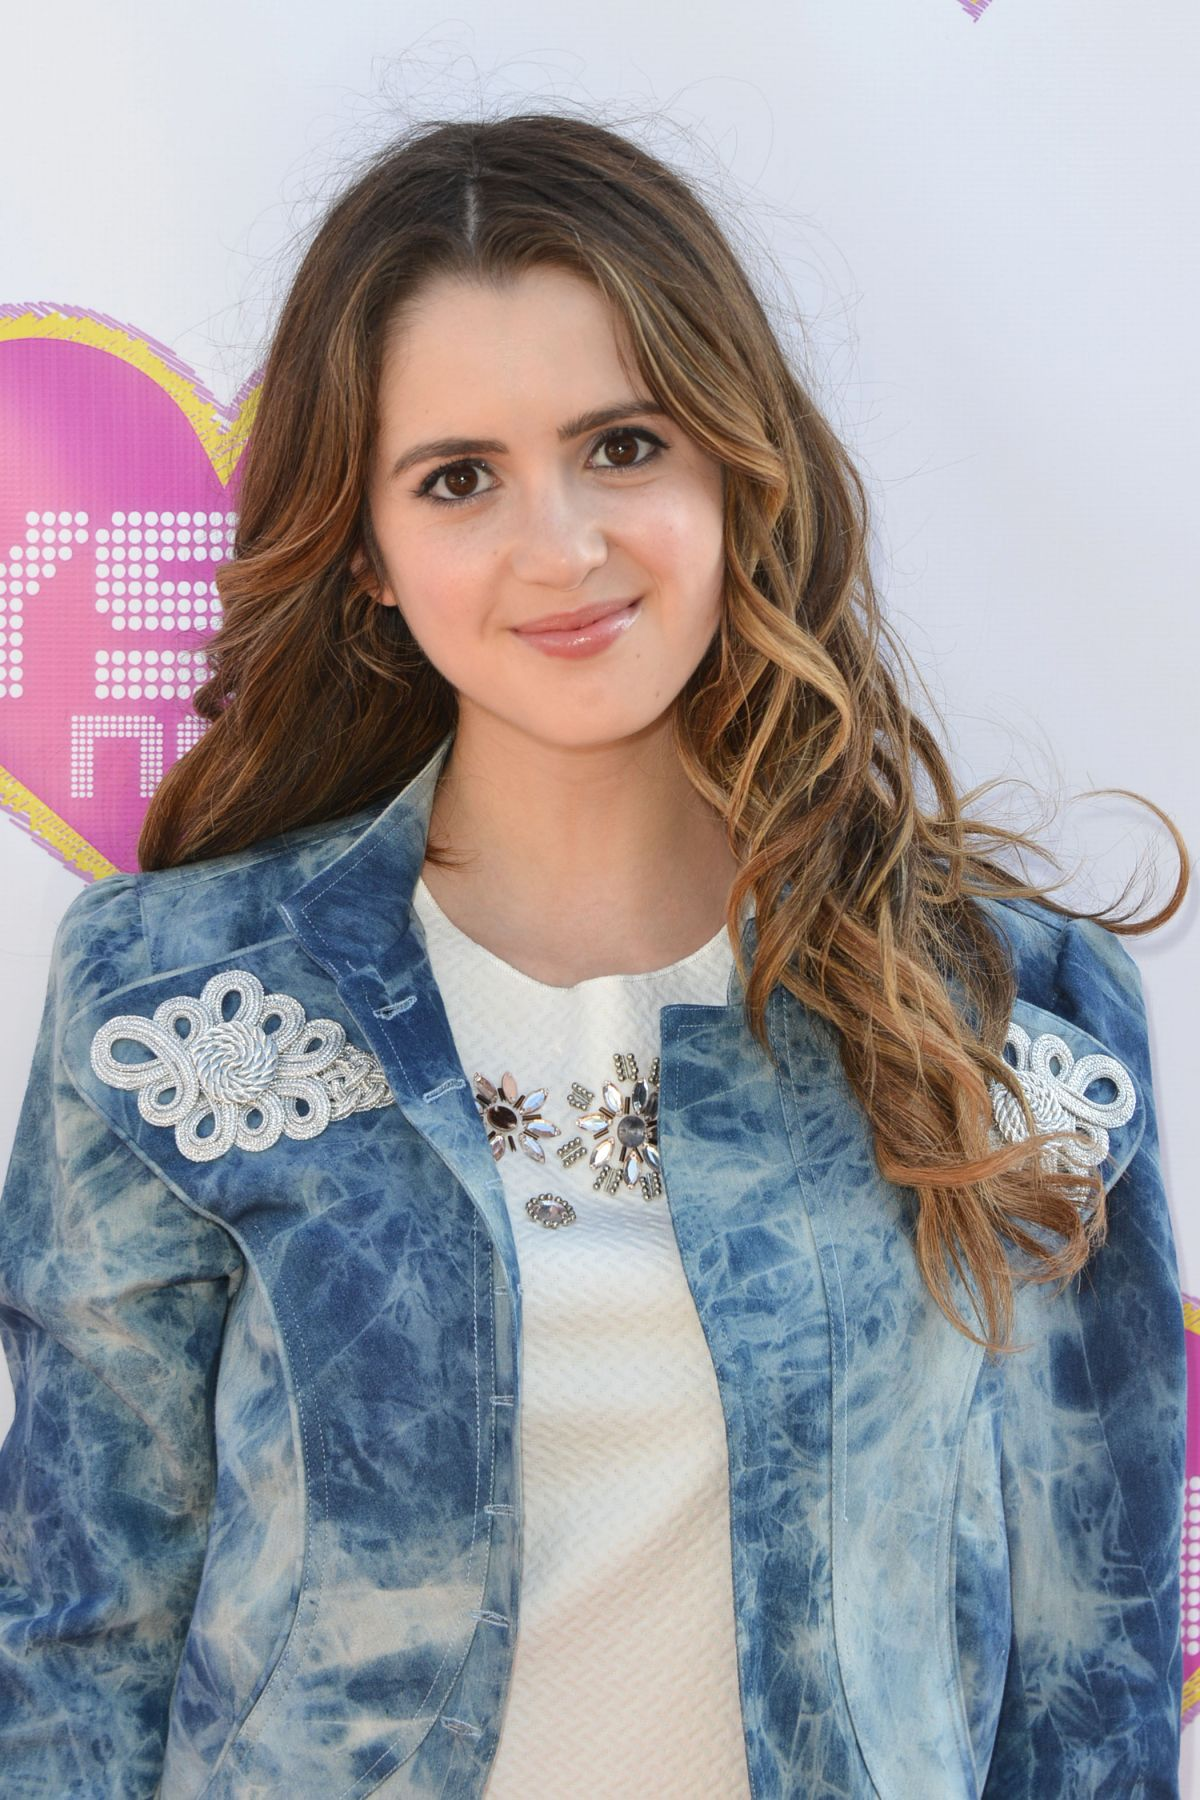 laura marano the me that you don't see lyrics